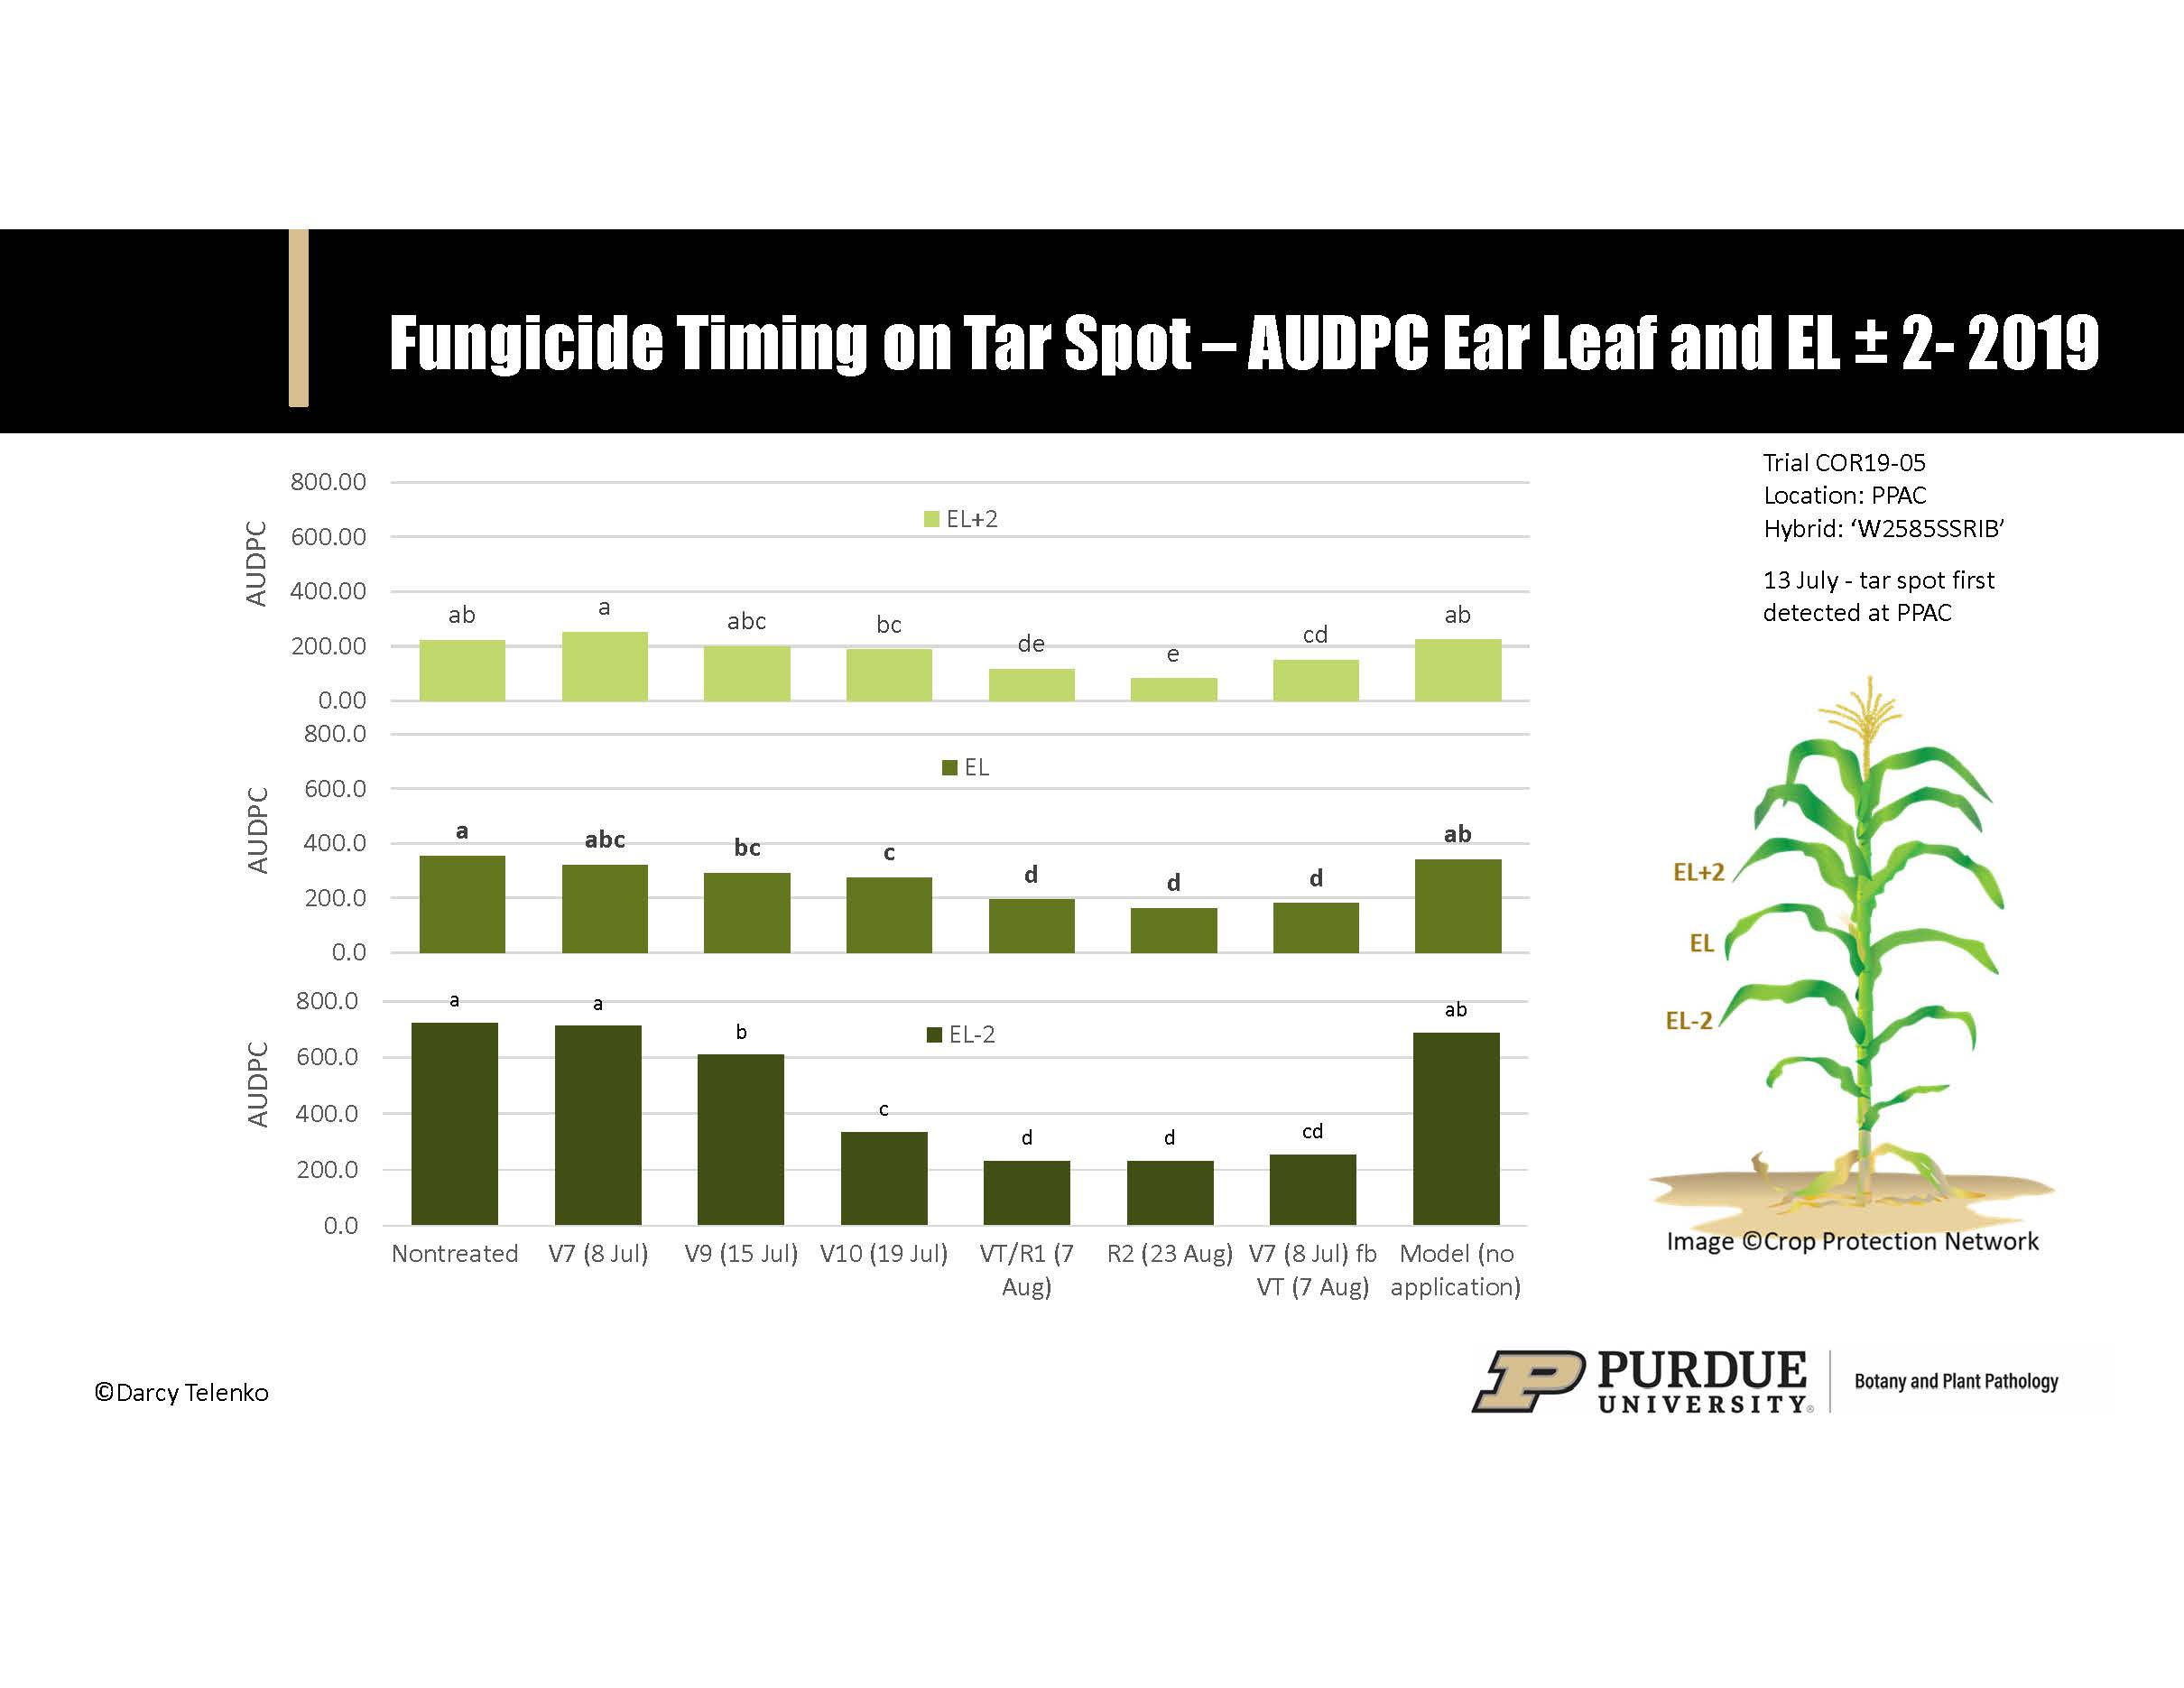 Figure 2. Effect of fungicide timing on the development of tar spot on the ear leaf (EL) and the two leaves above and below the ear leaf (EL±2). Timing treatments included V7, V9, V10, tassel/silk (VT/R1), blister (R2), and a two-fungicide application program made at V7 followed by VT. AUDPC = by area under disease progress curve. Tar spot first detected in trial on 13 July.